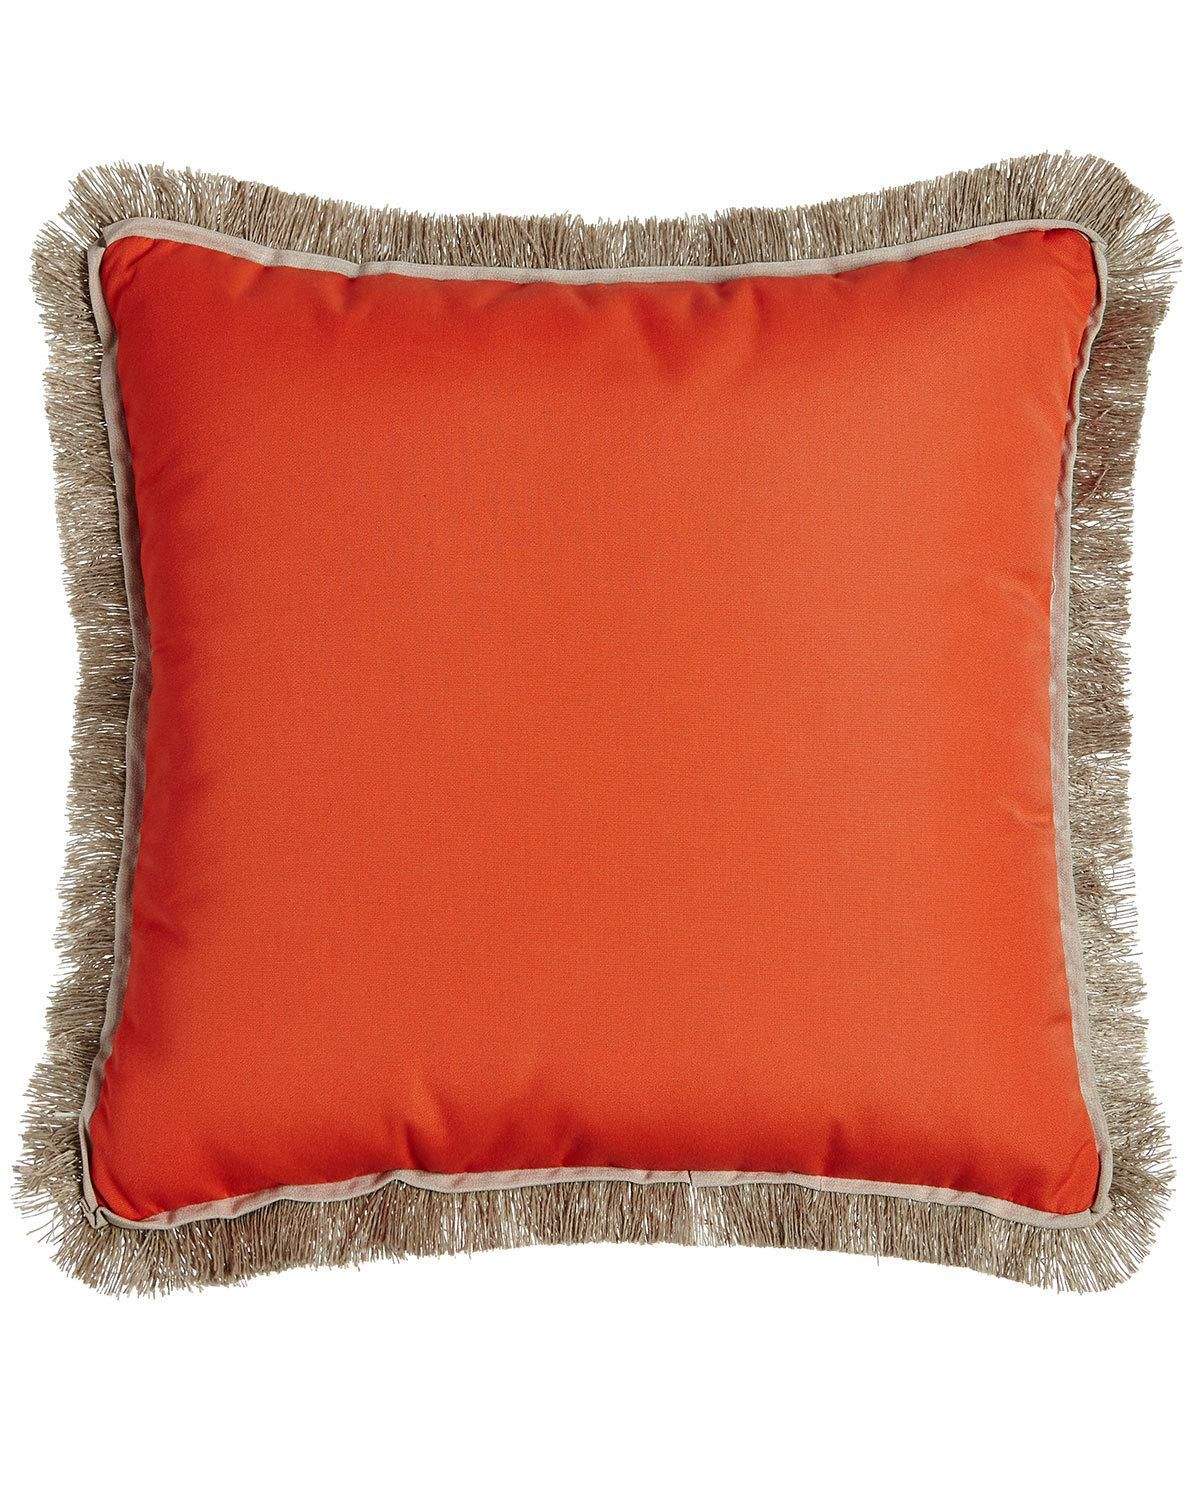 Lacefield Designs Fringed Coral Outdoor Pillow Products